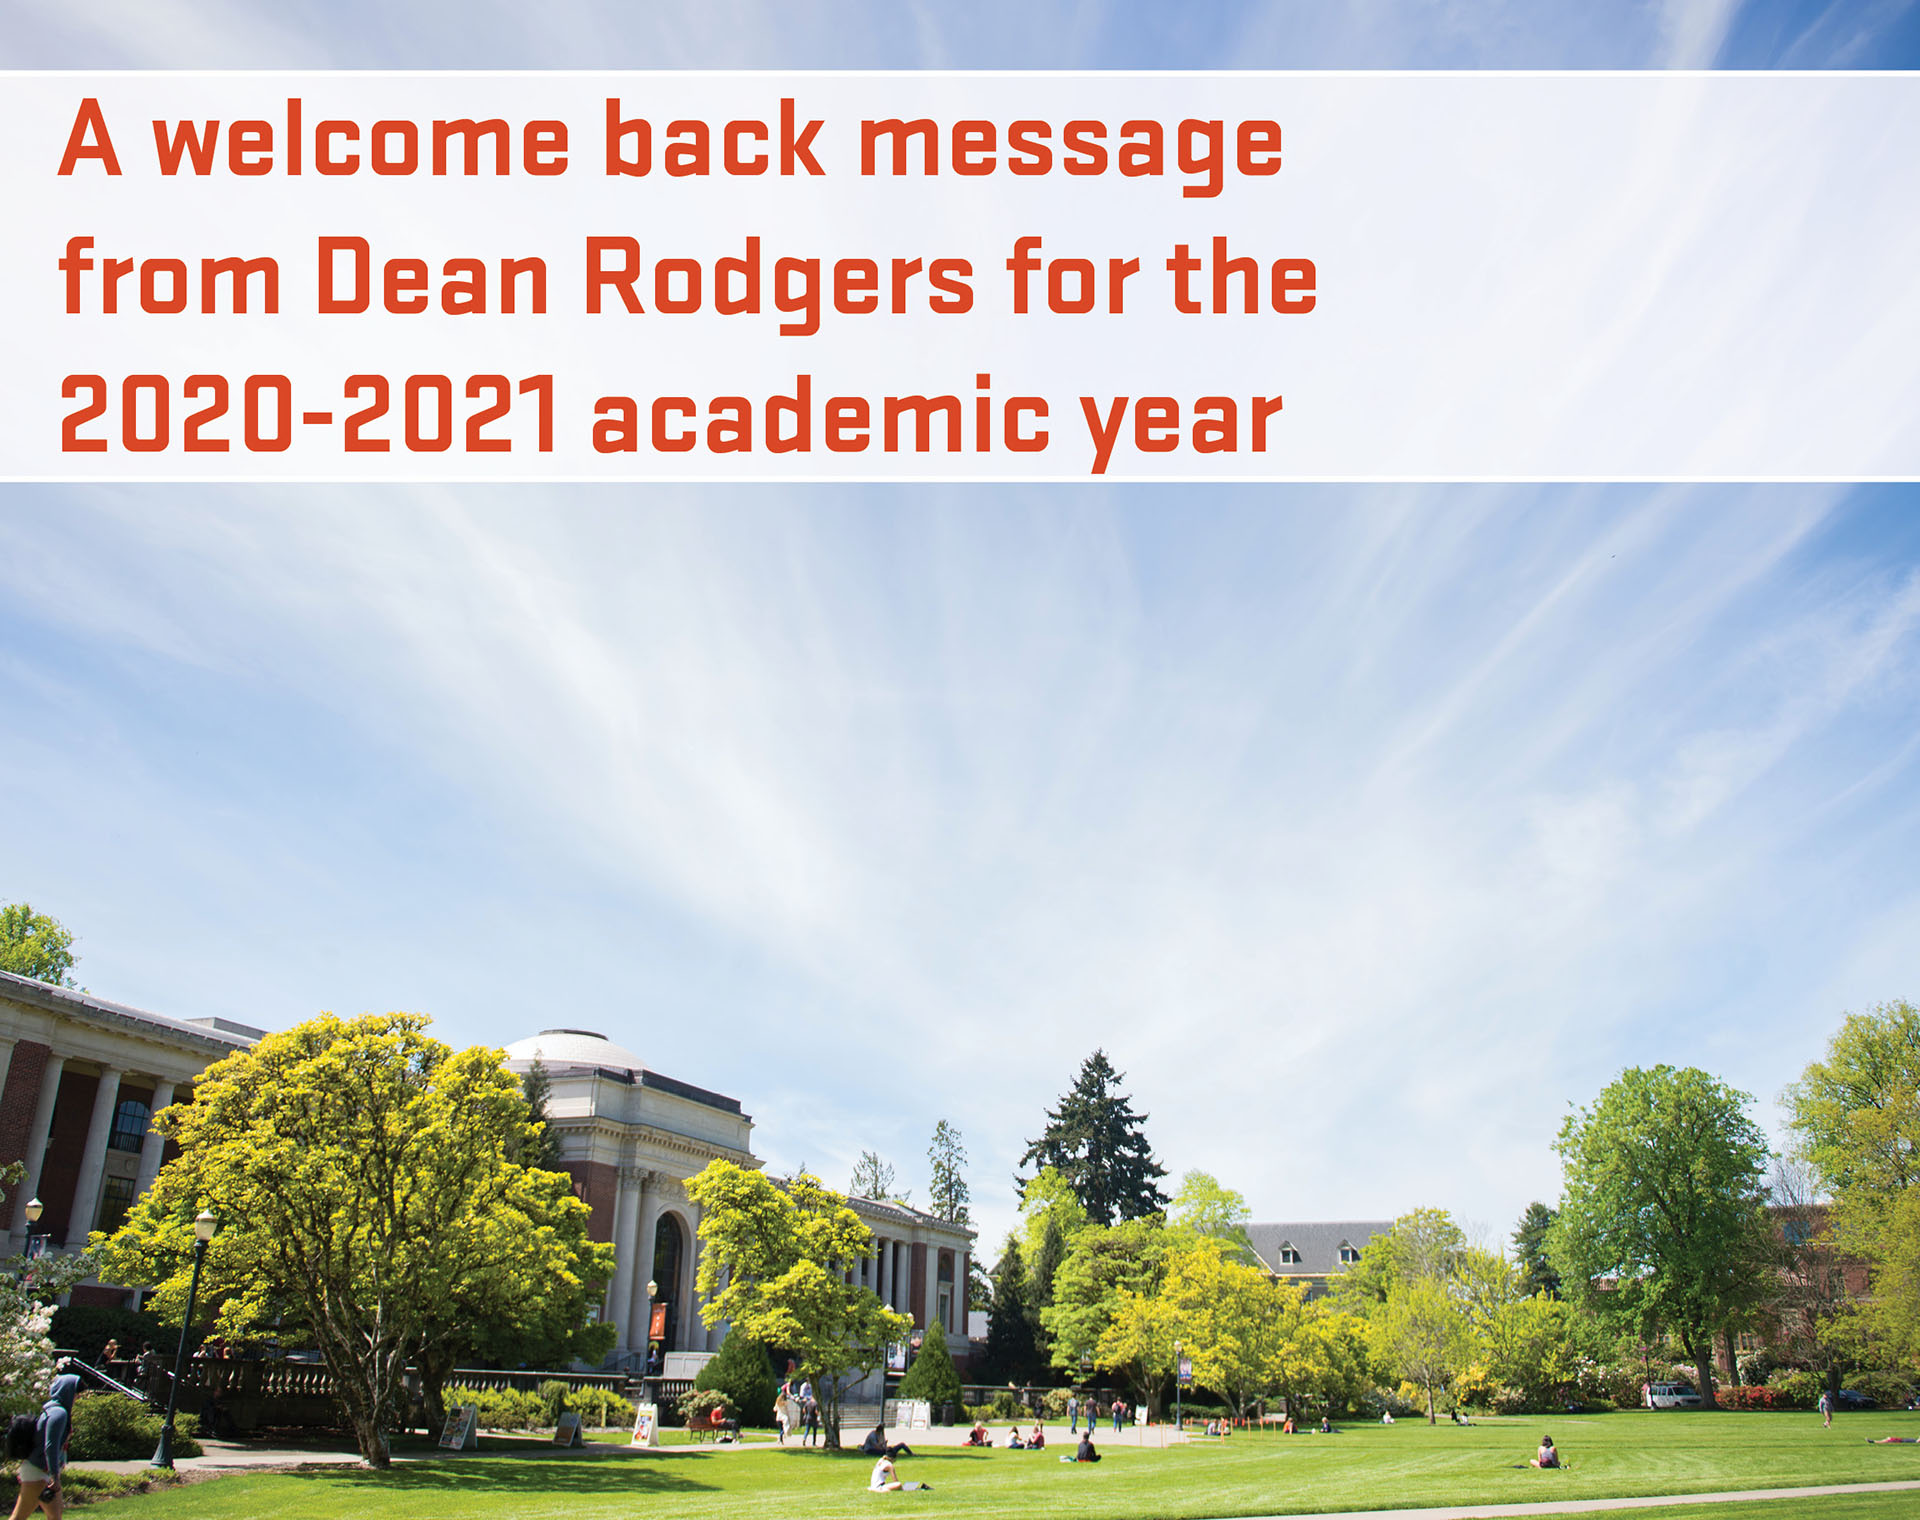 Welcome back to 2020-2021 from Dean Rodgers